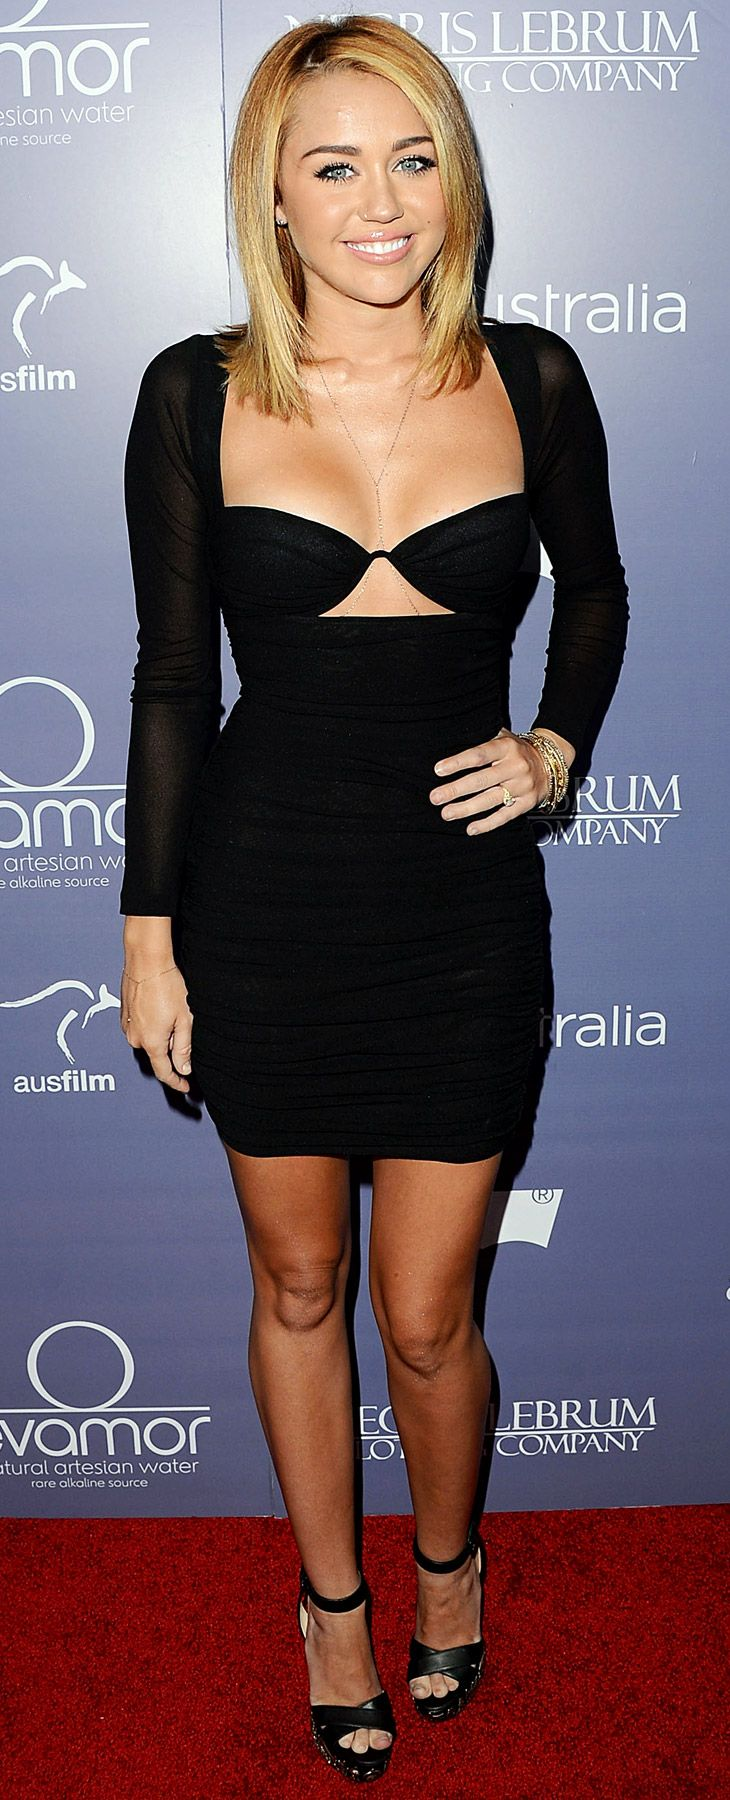 Miley Cyrus: Australians In Film Awards